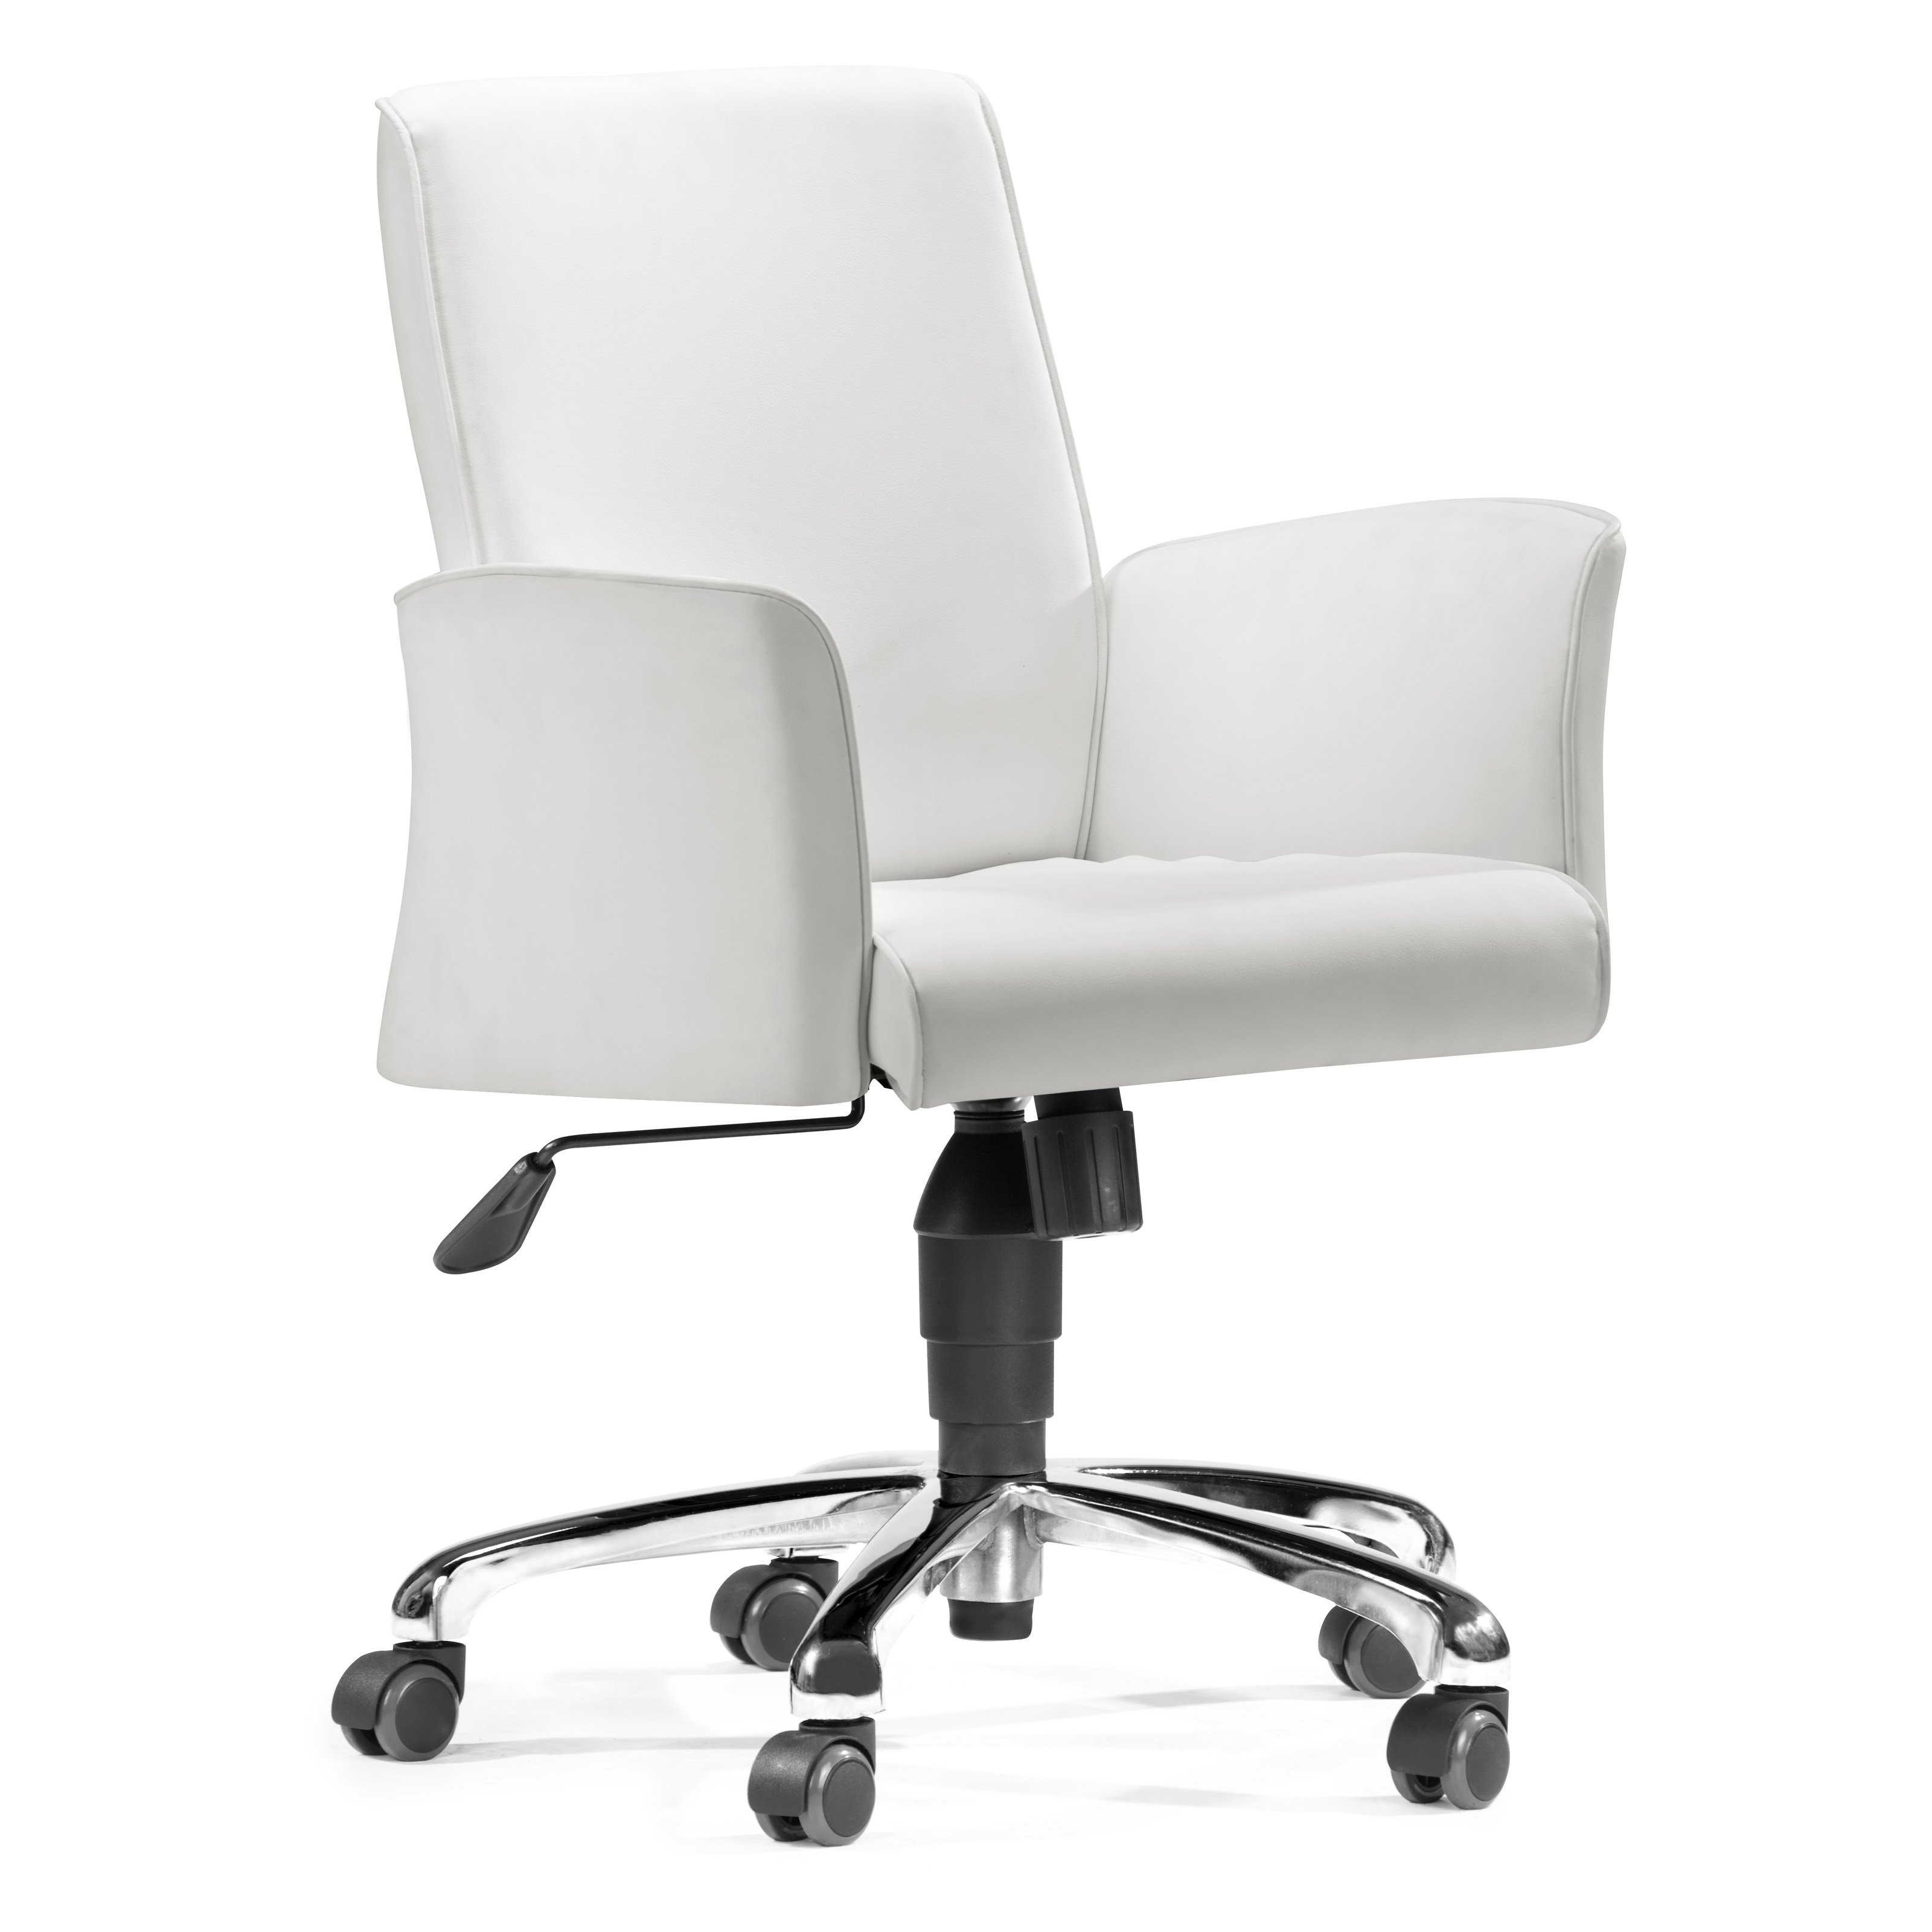 Best ideas about White Desk Chair . Save or Pin Zuo Modern Metro fice Chair White at Hayneedle Now.